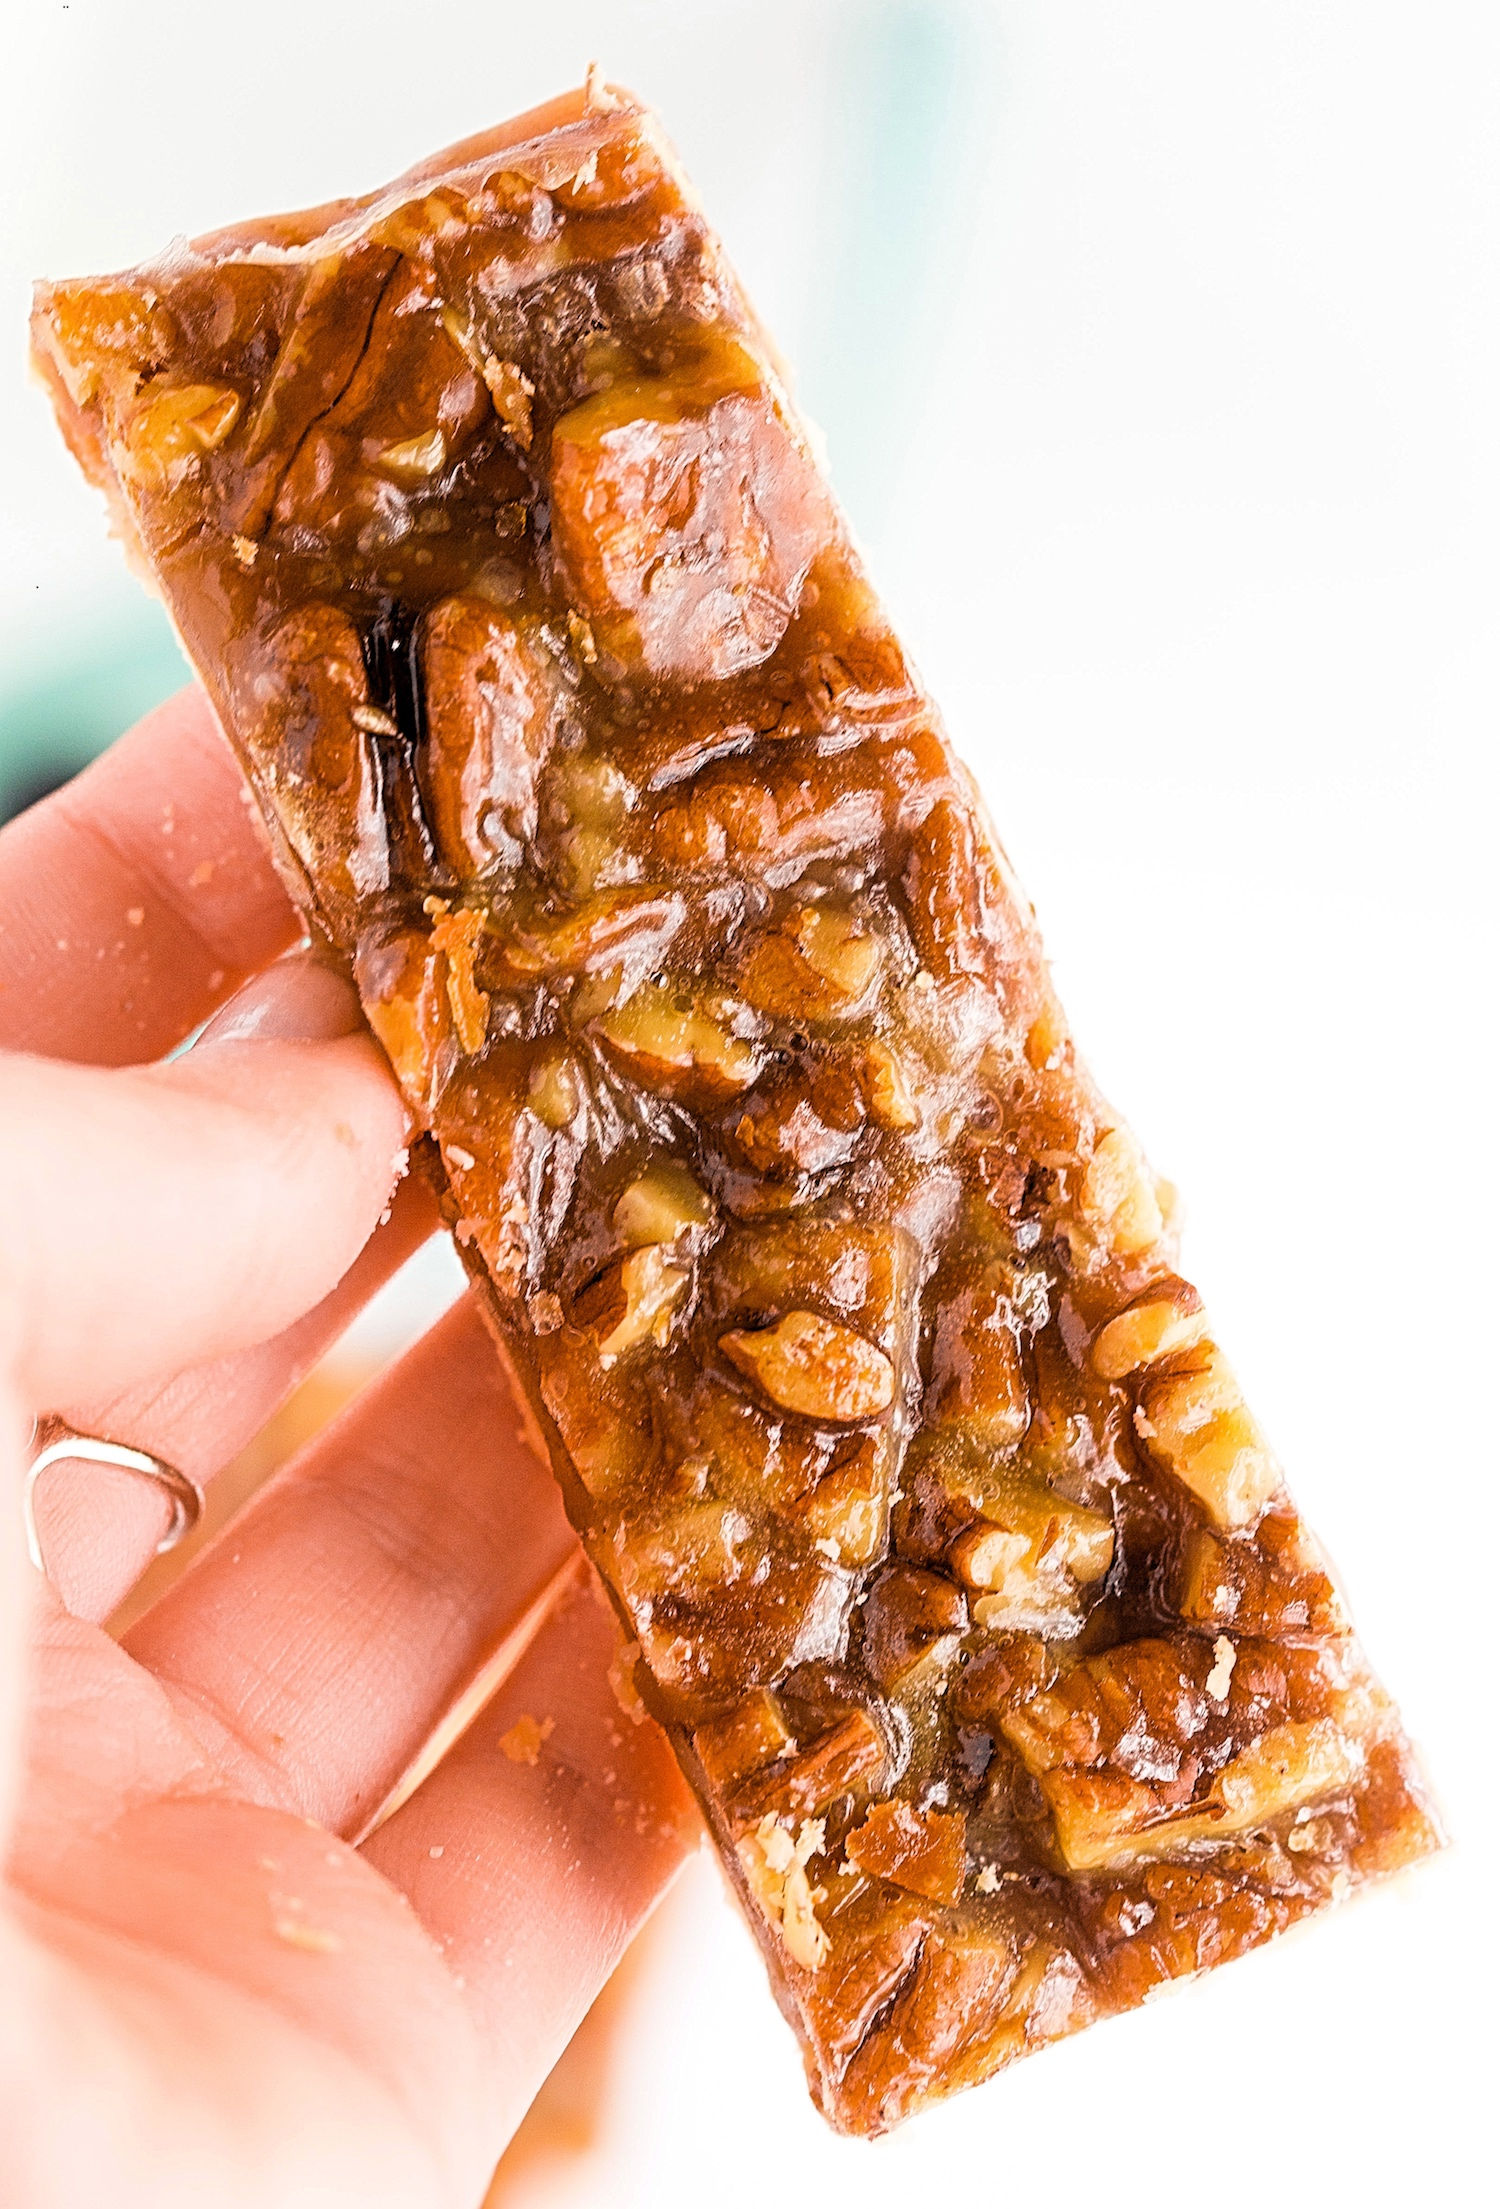 Pecan Pie Bars: flaky, buttery crust topped with a sweet, buttery pecan pie mixture, yielding crispy, crunchy, chewy, soft, buttery, caramely, sweet + salty pecan pie bars. | TrufflesandTrends.com